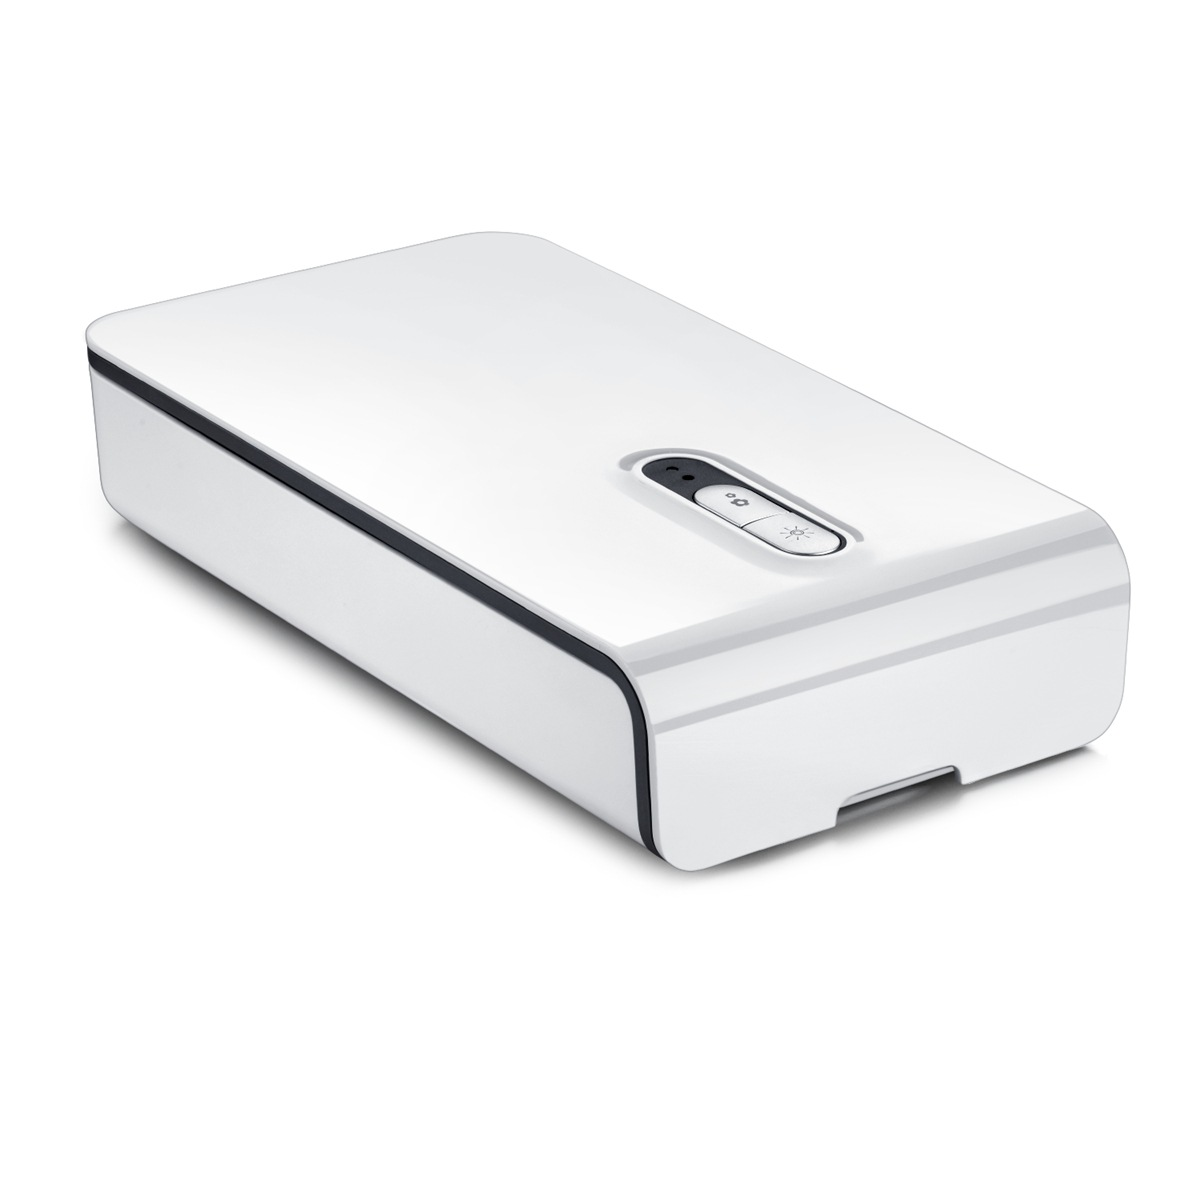 Portable UV Phone Sterilizer Box for Jewelry Cellphone Underwear Mask Toothbrush Disinfection White